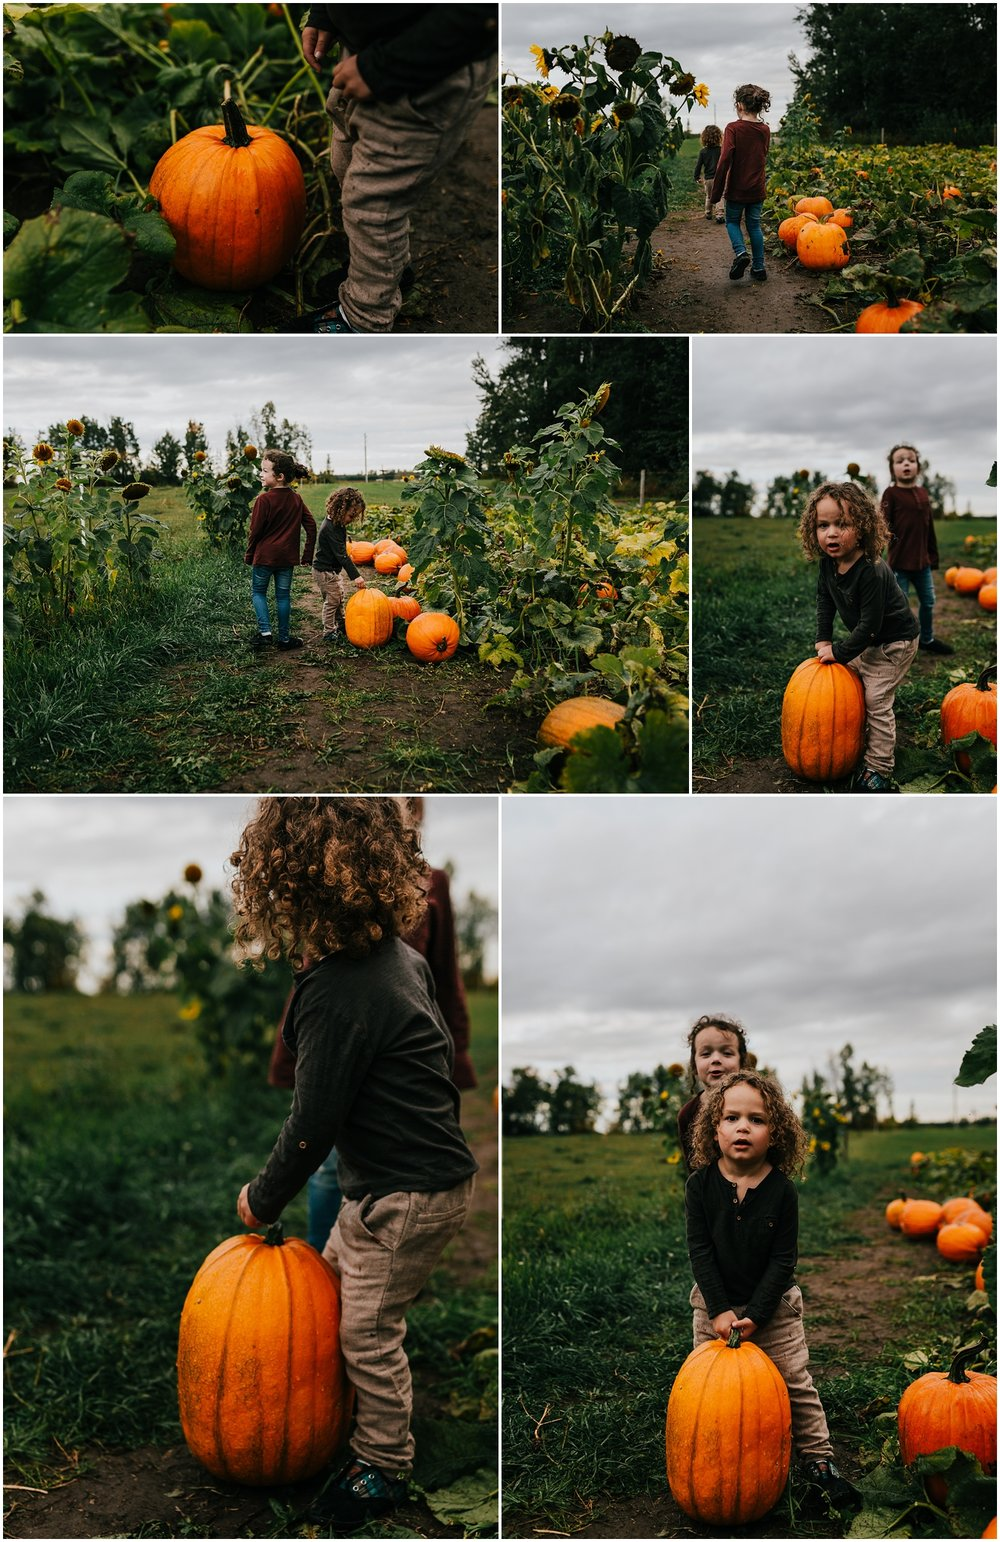 Edmonton Lifestyle Photographer - Treelines Photography - Edmonton Family Photographer - Family Photography - Somerset Farms